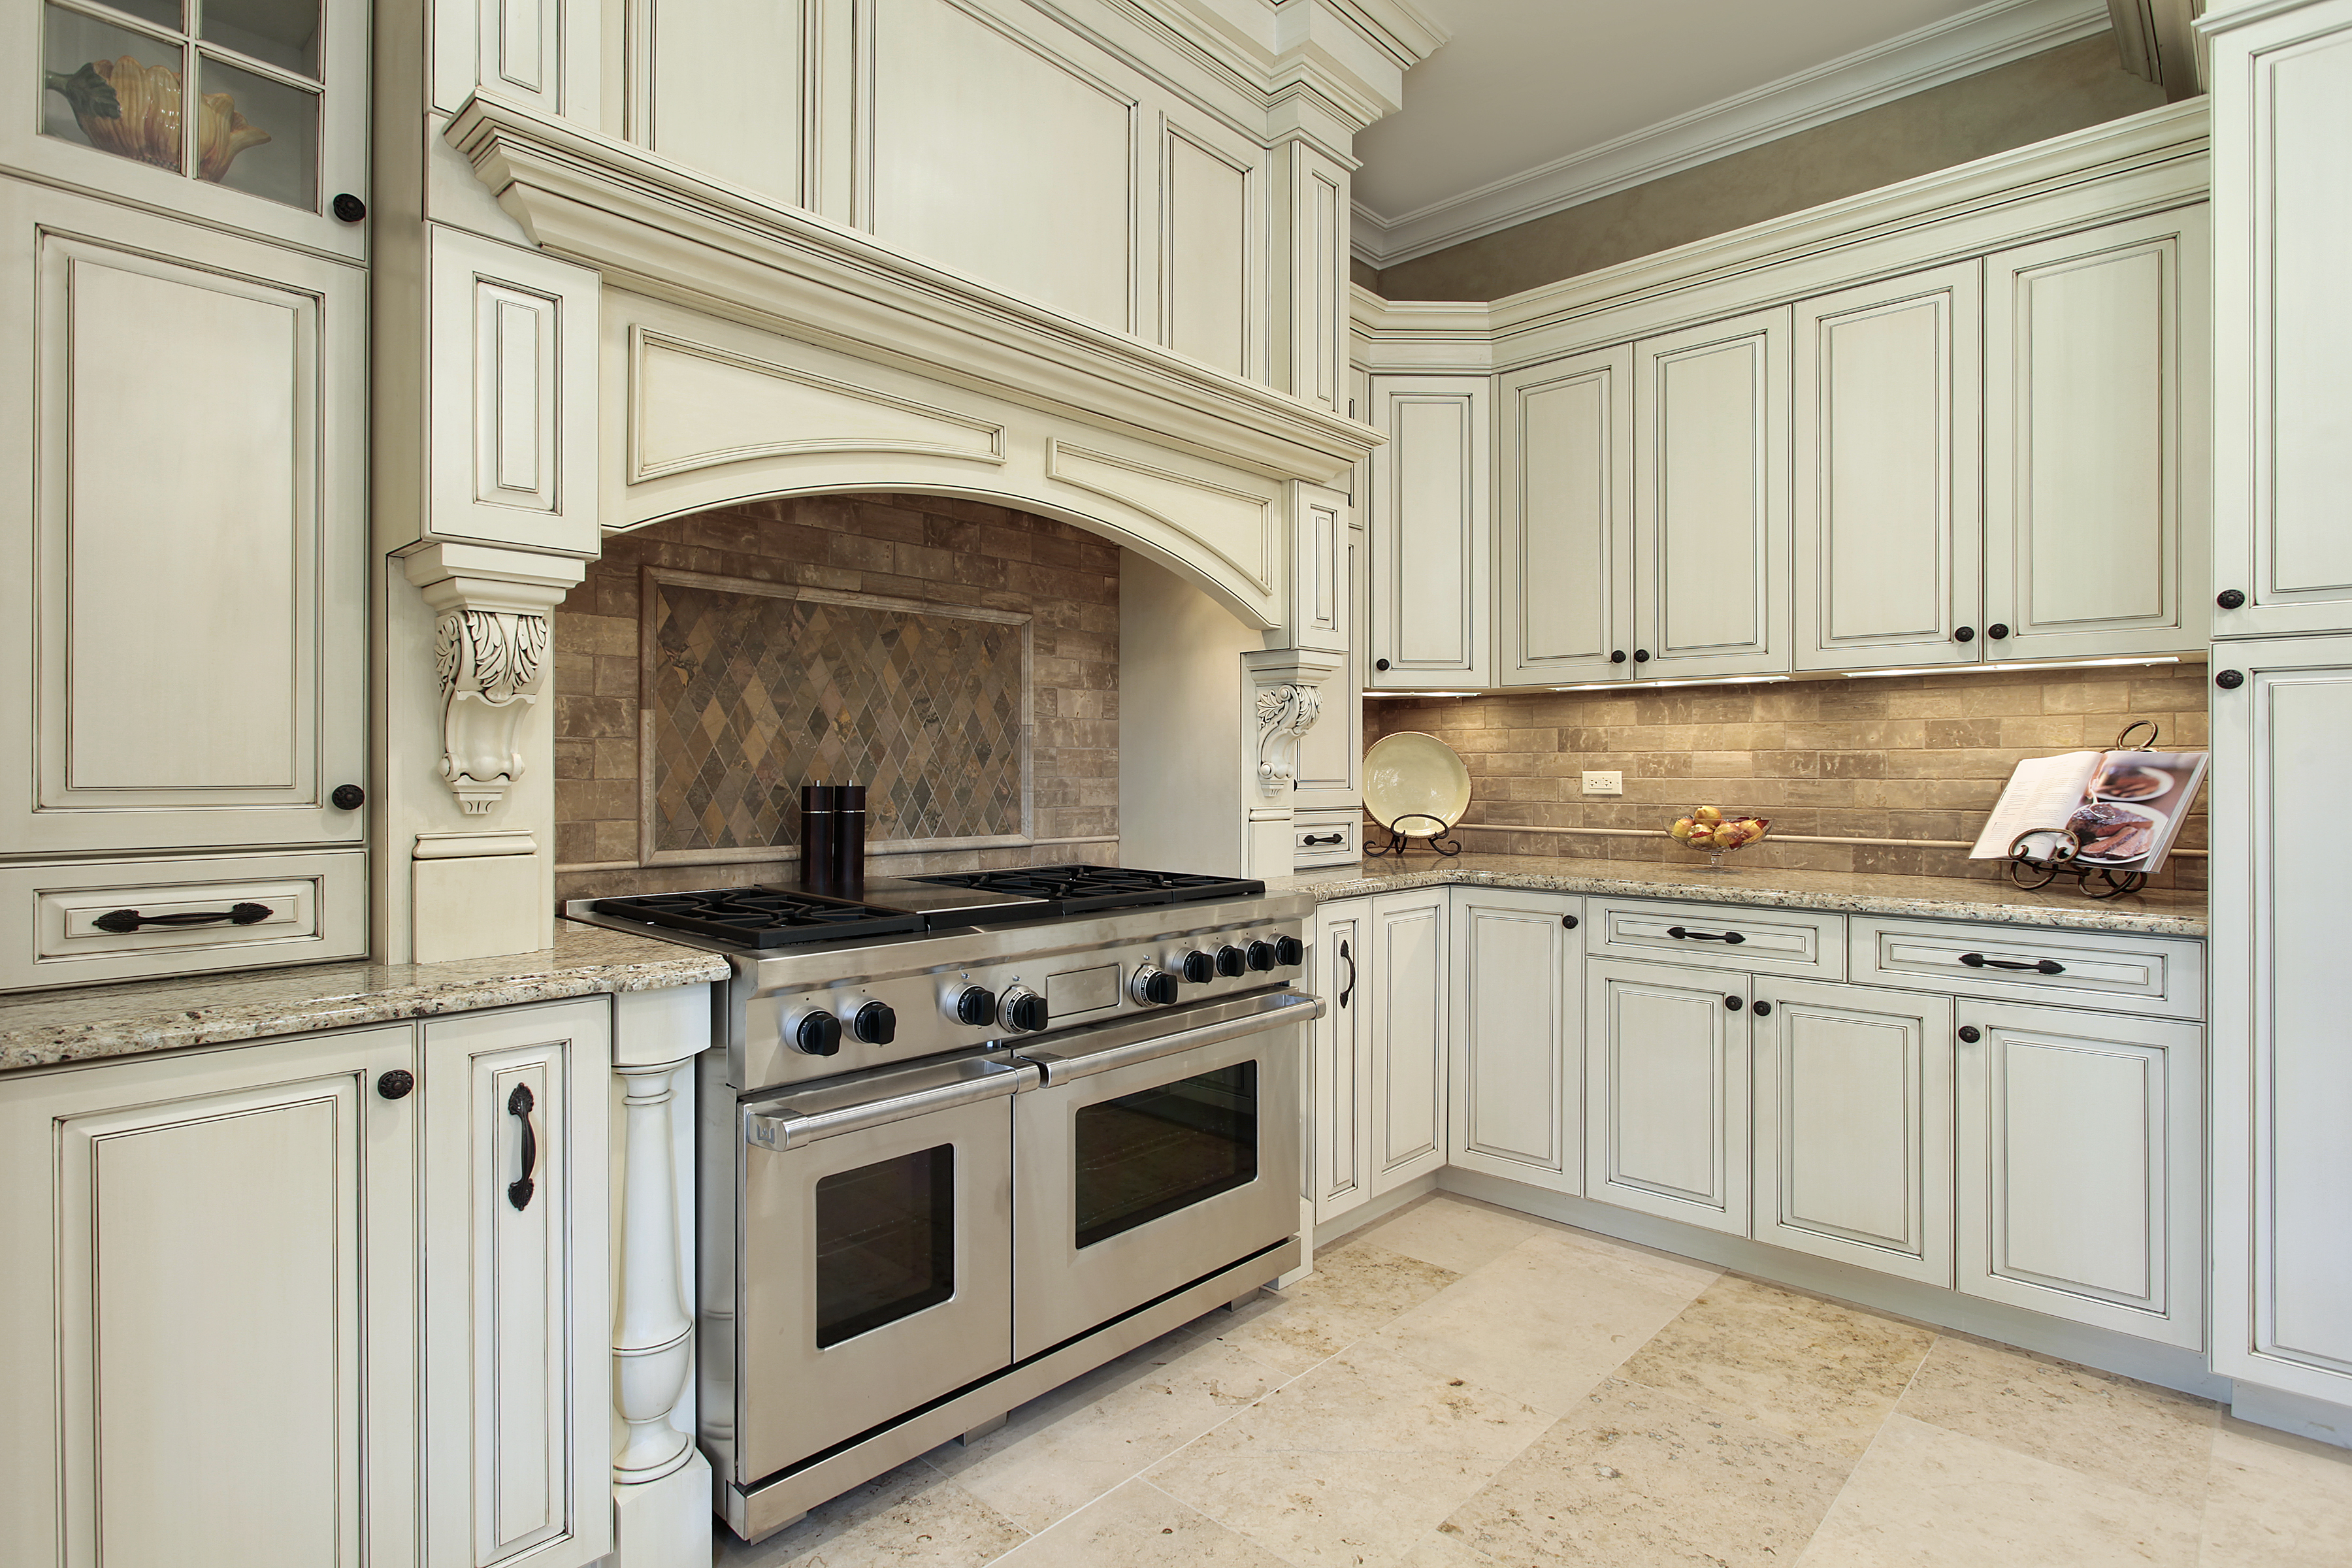 Imperial cabinet company - Custom cabinet companies ...